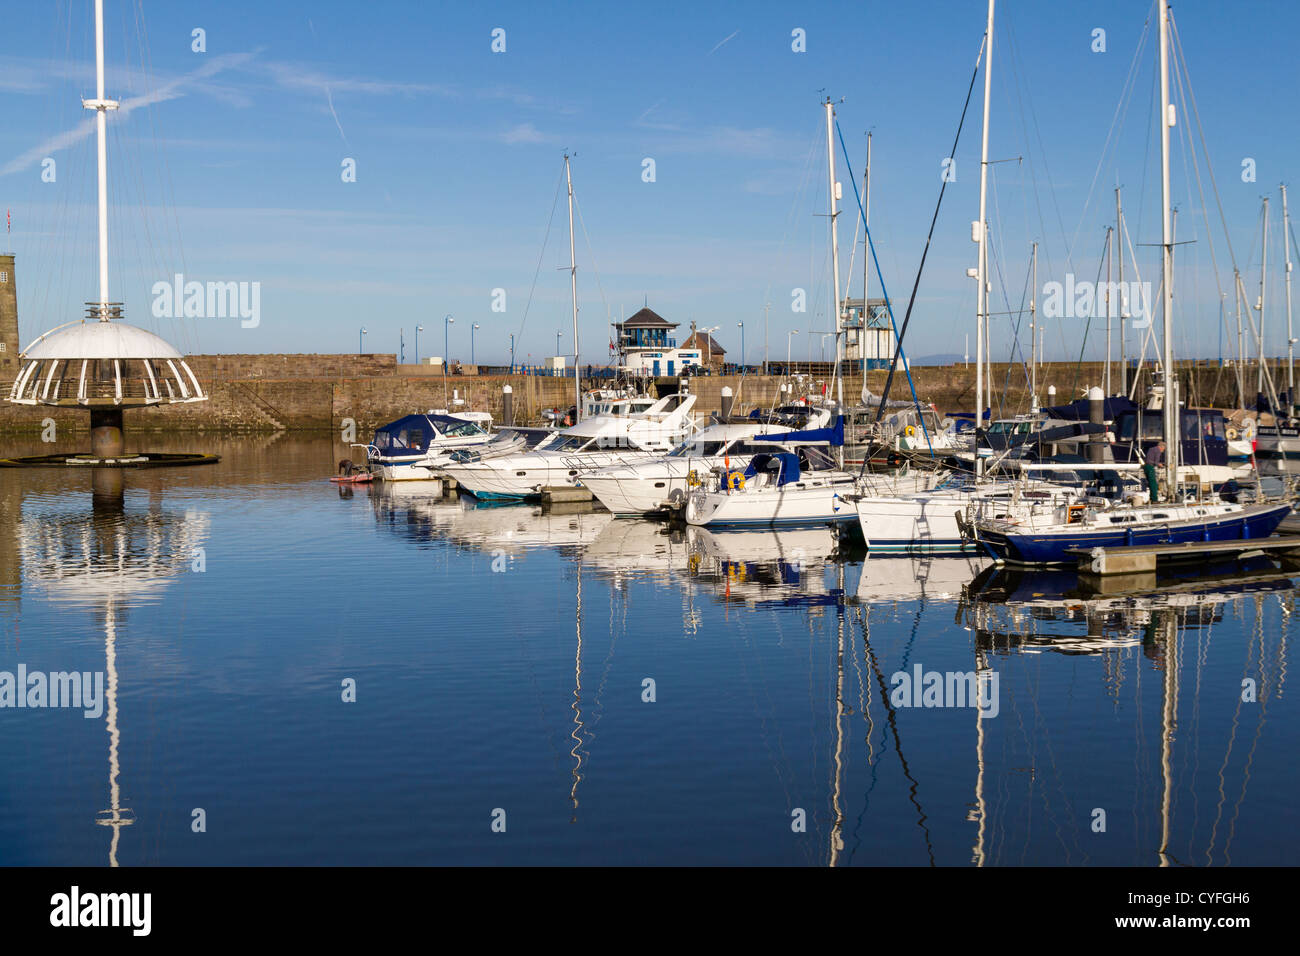 Harbour and waterfront in Whitehaven Cumbria - Stock Image